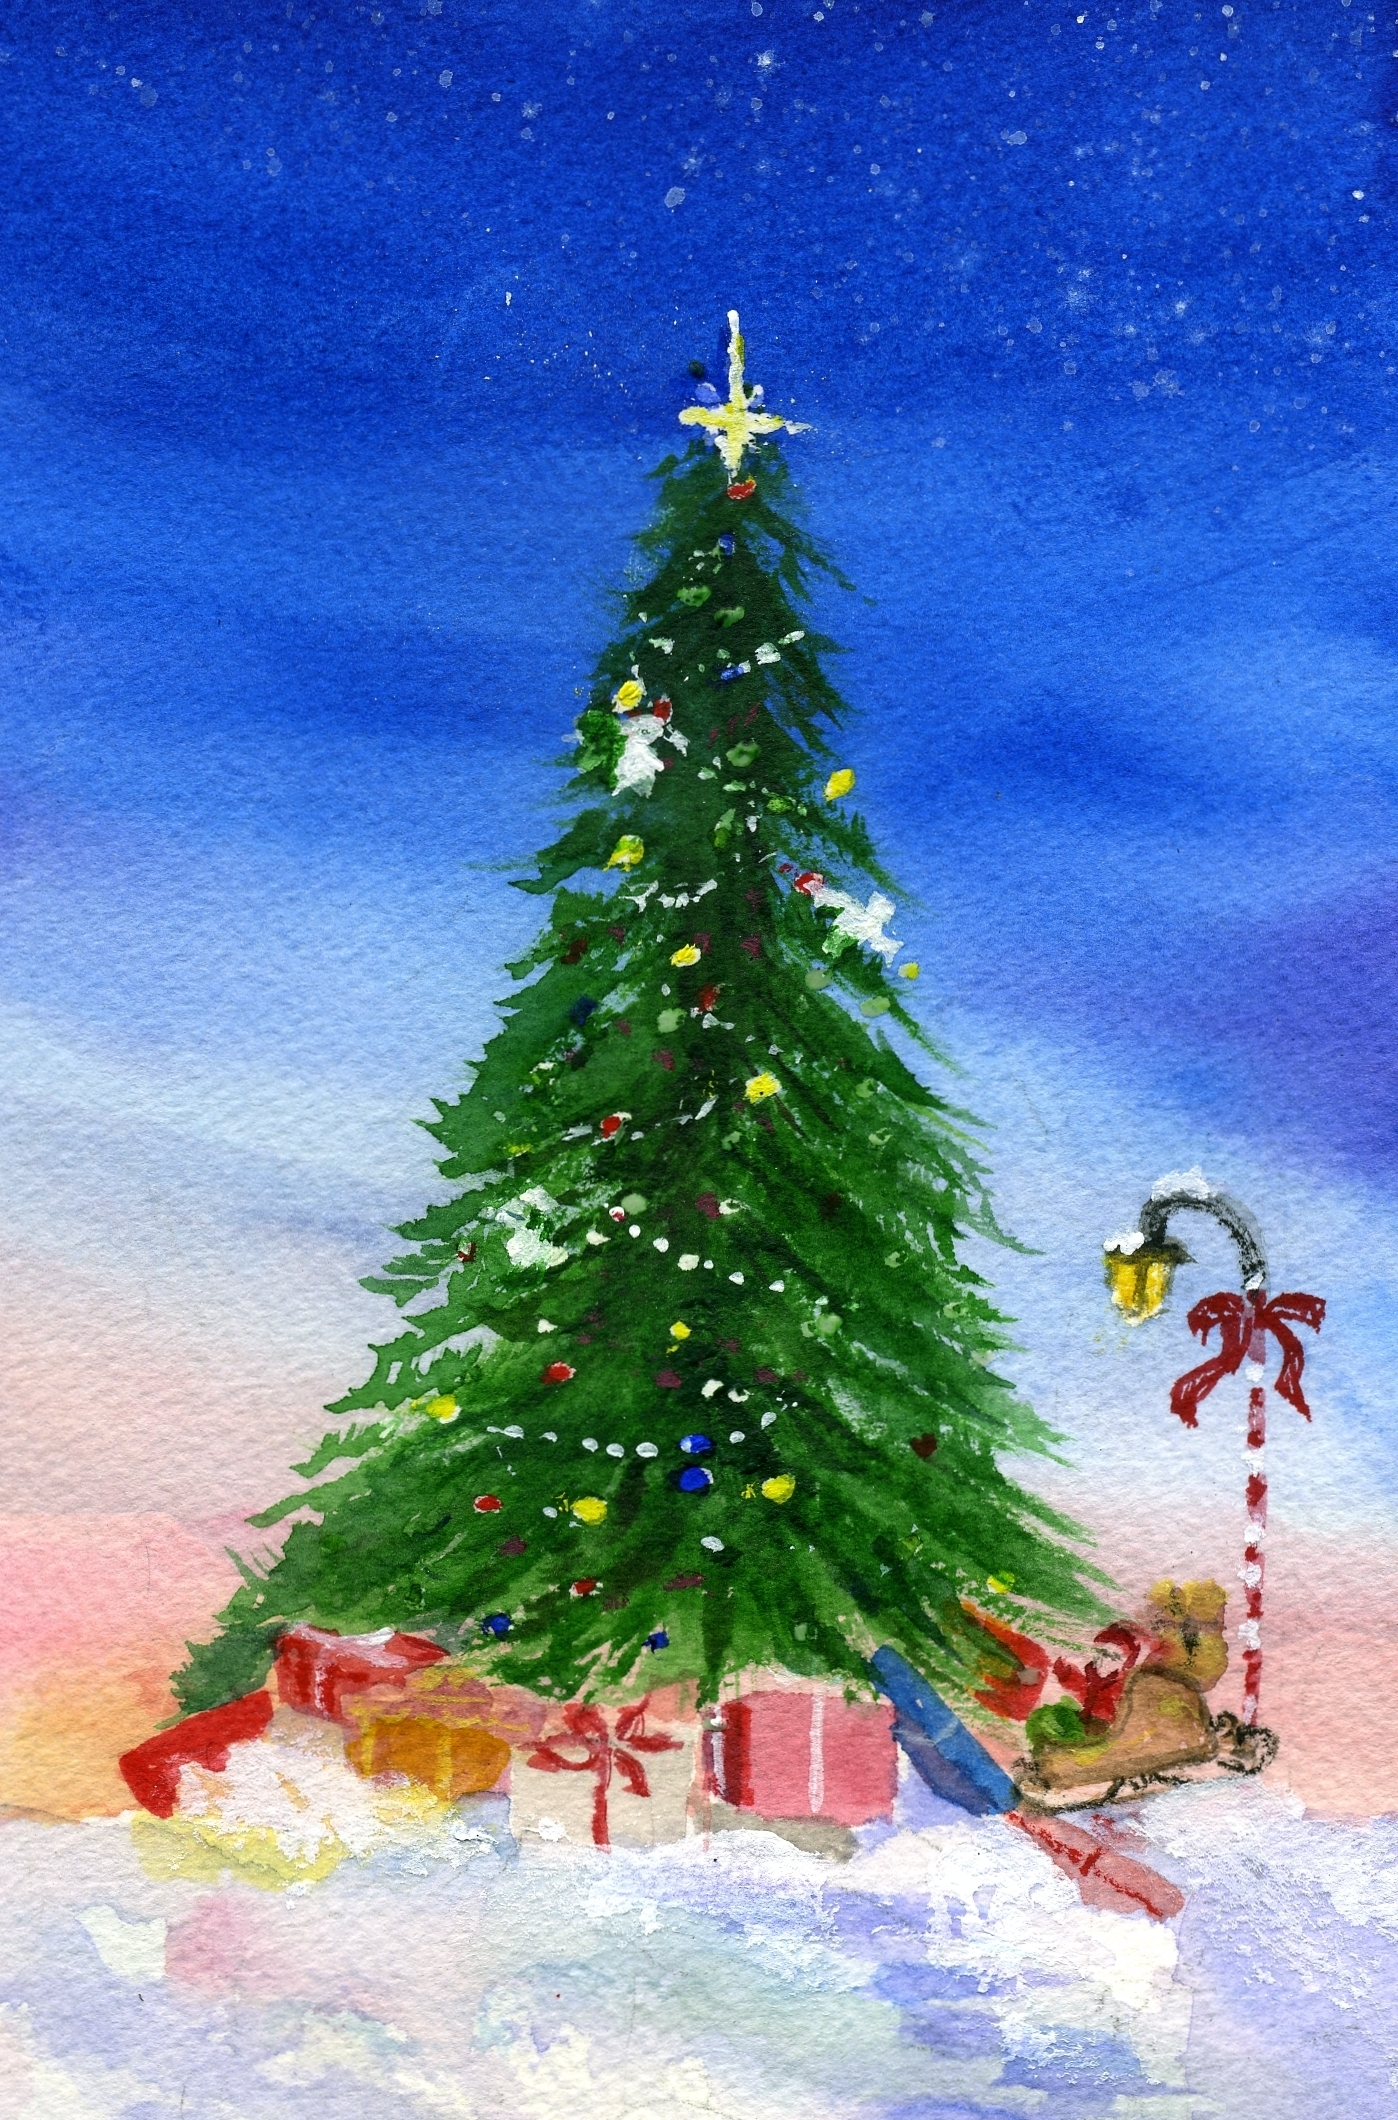 http://www.marykaymoody.com/wp-content/uploads/2013/12/Christmas-Tree-Painting-crop1.jpeg